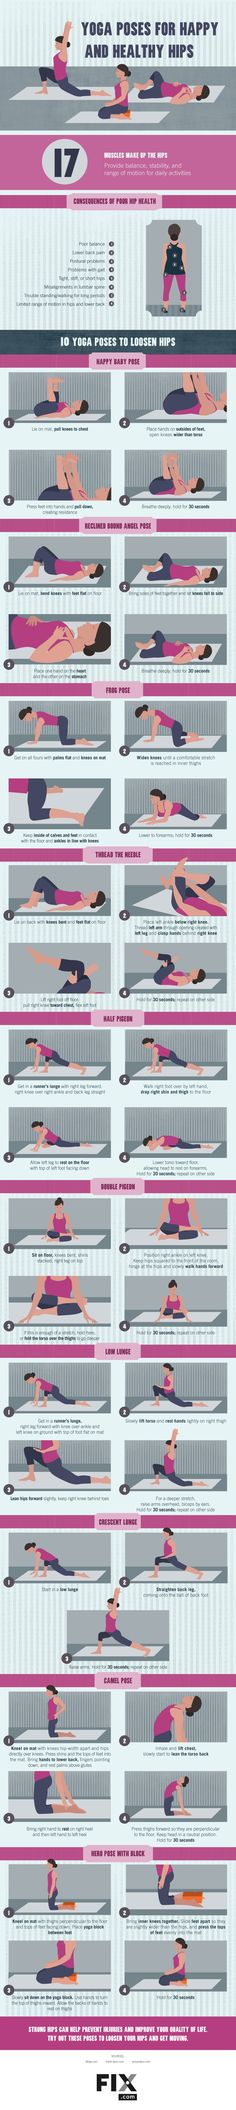 Yoga can do wonder for your hips, so why not add these 10 poses to your daily routine?